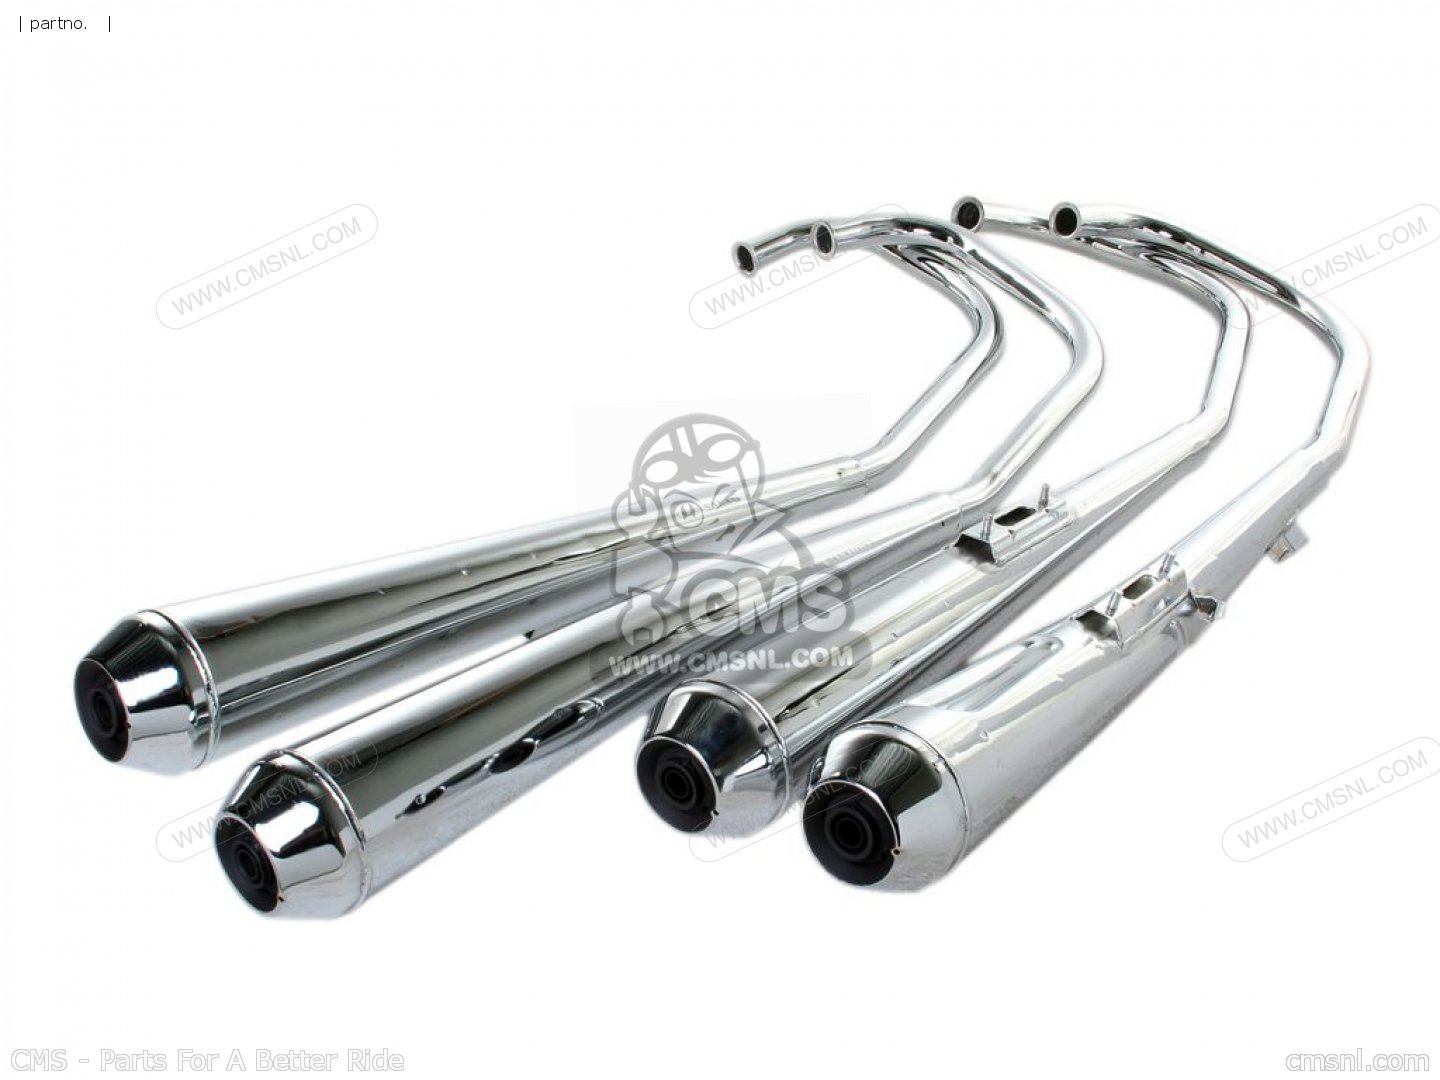 01800 405 781 Muffler_01800405778 on Motorcycle Exhaust Systems